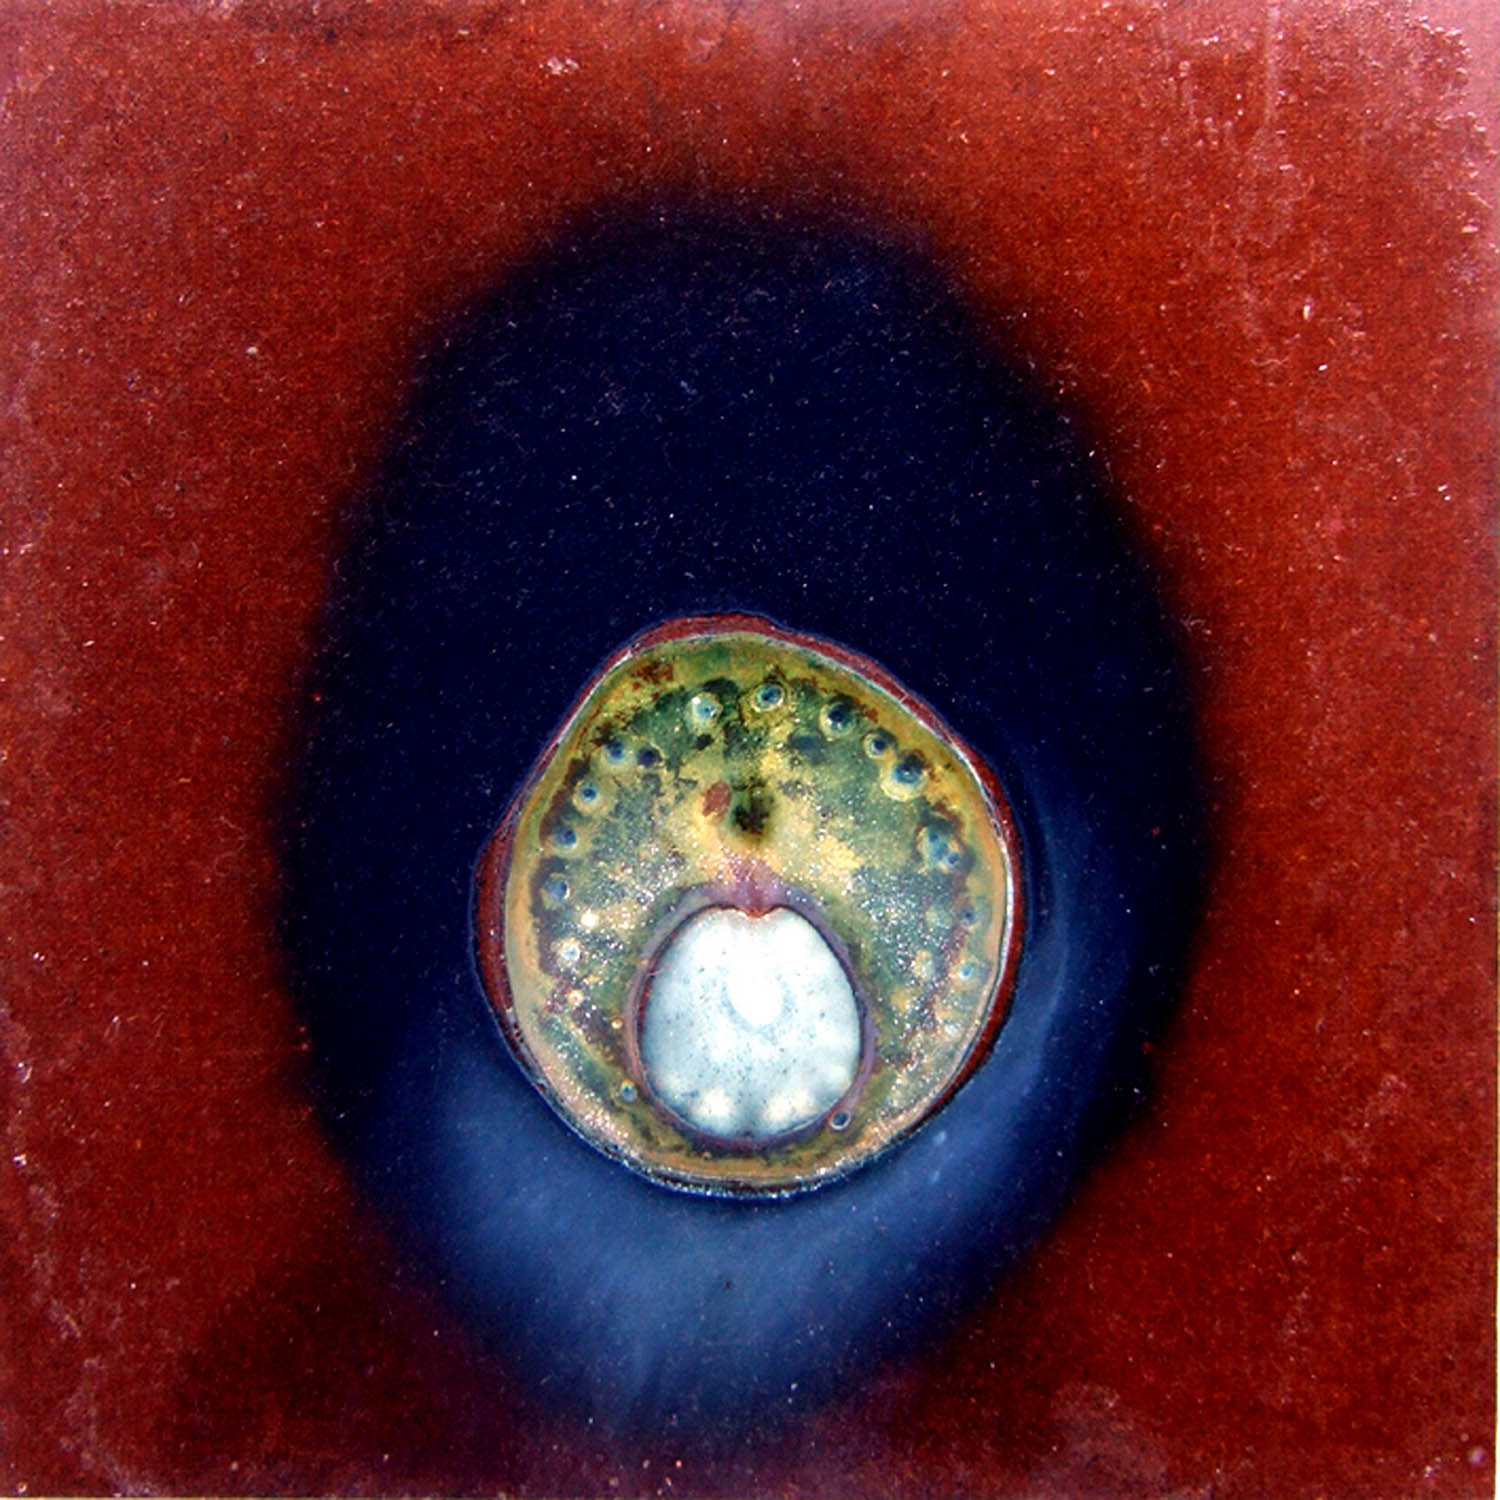 cosm 1a (2007), mixed media on particle board, 40 x 40cm